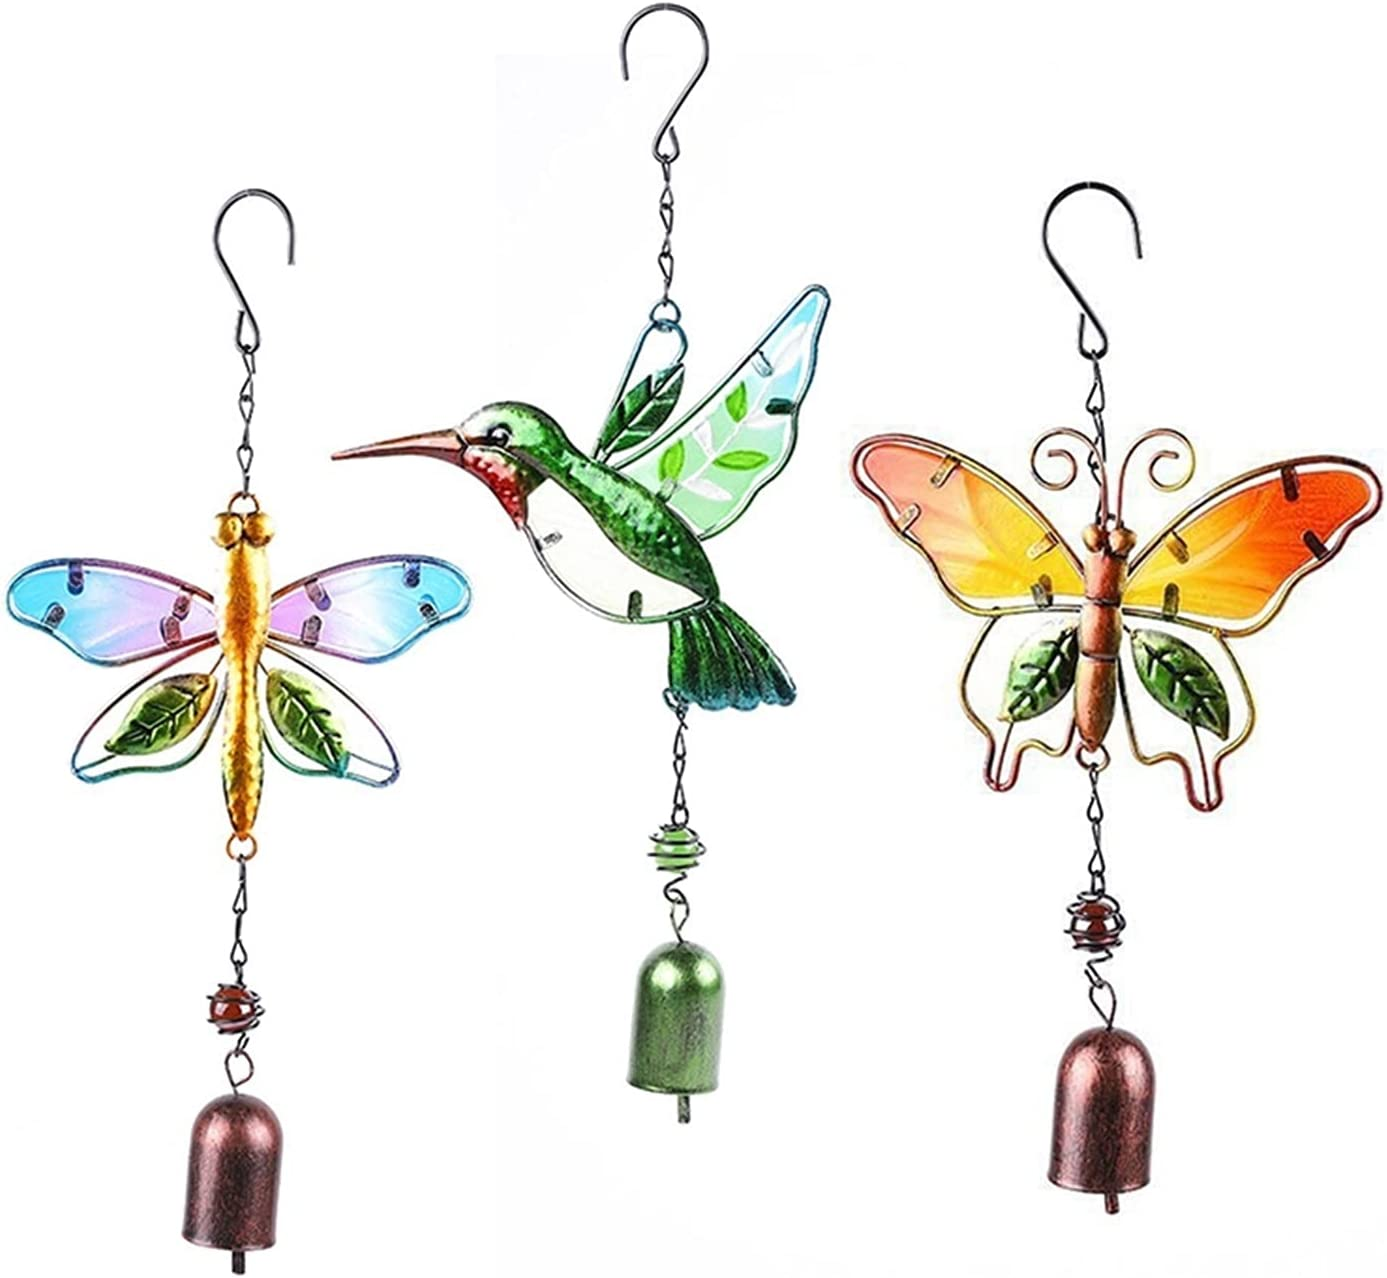 YHMY NEW Wind Sculptures Spinners 3PC Dragonfly Win Butterfly Bird Atlanta Mall